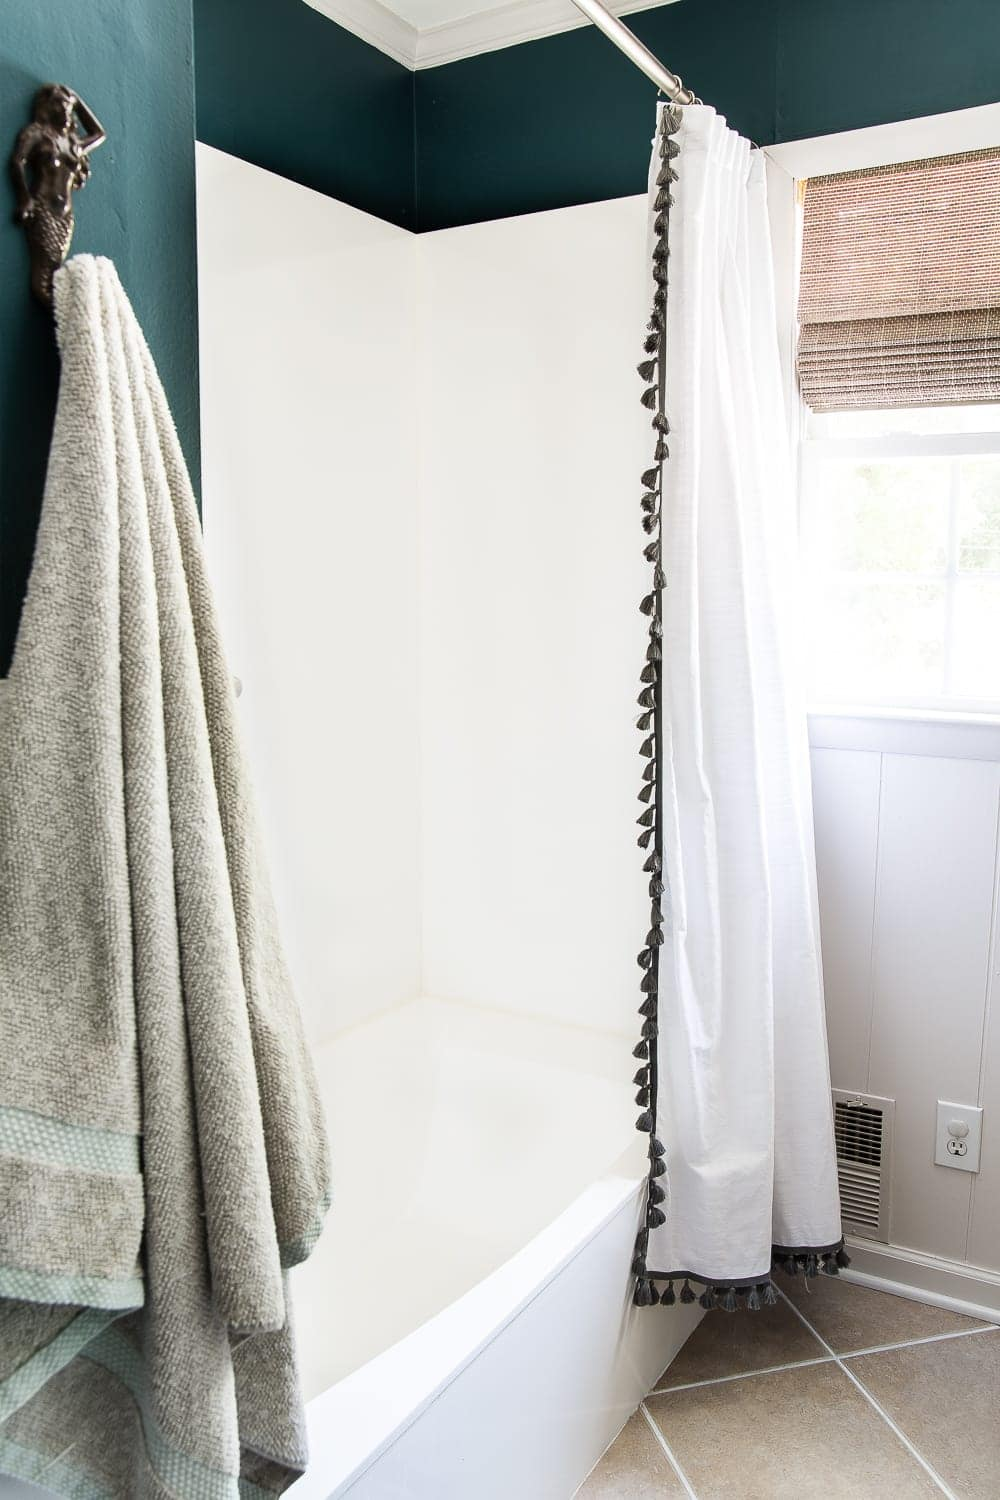 How to paint a sink, countertop, tub, and shower for $100 and how to make it last using Rustoleum Tub & Tile Refinishing Kit #bathroom #bathroommakeover #diyproject #homeimprovement #paintedsink #paintedcountertop #paintedtub #paintedshower